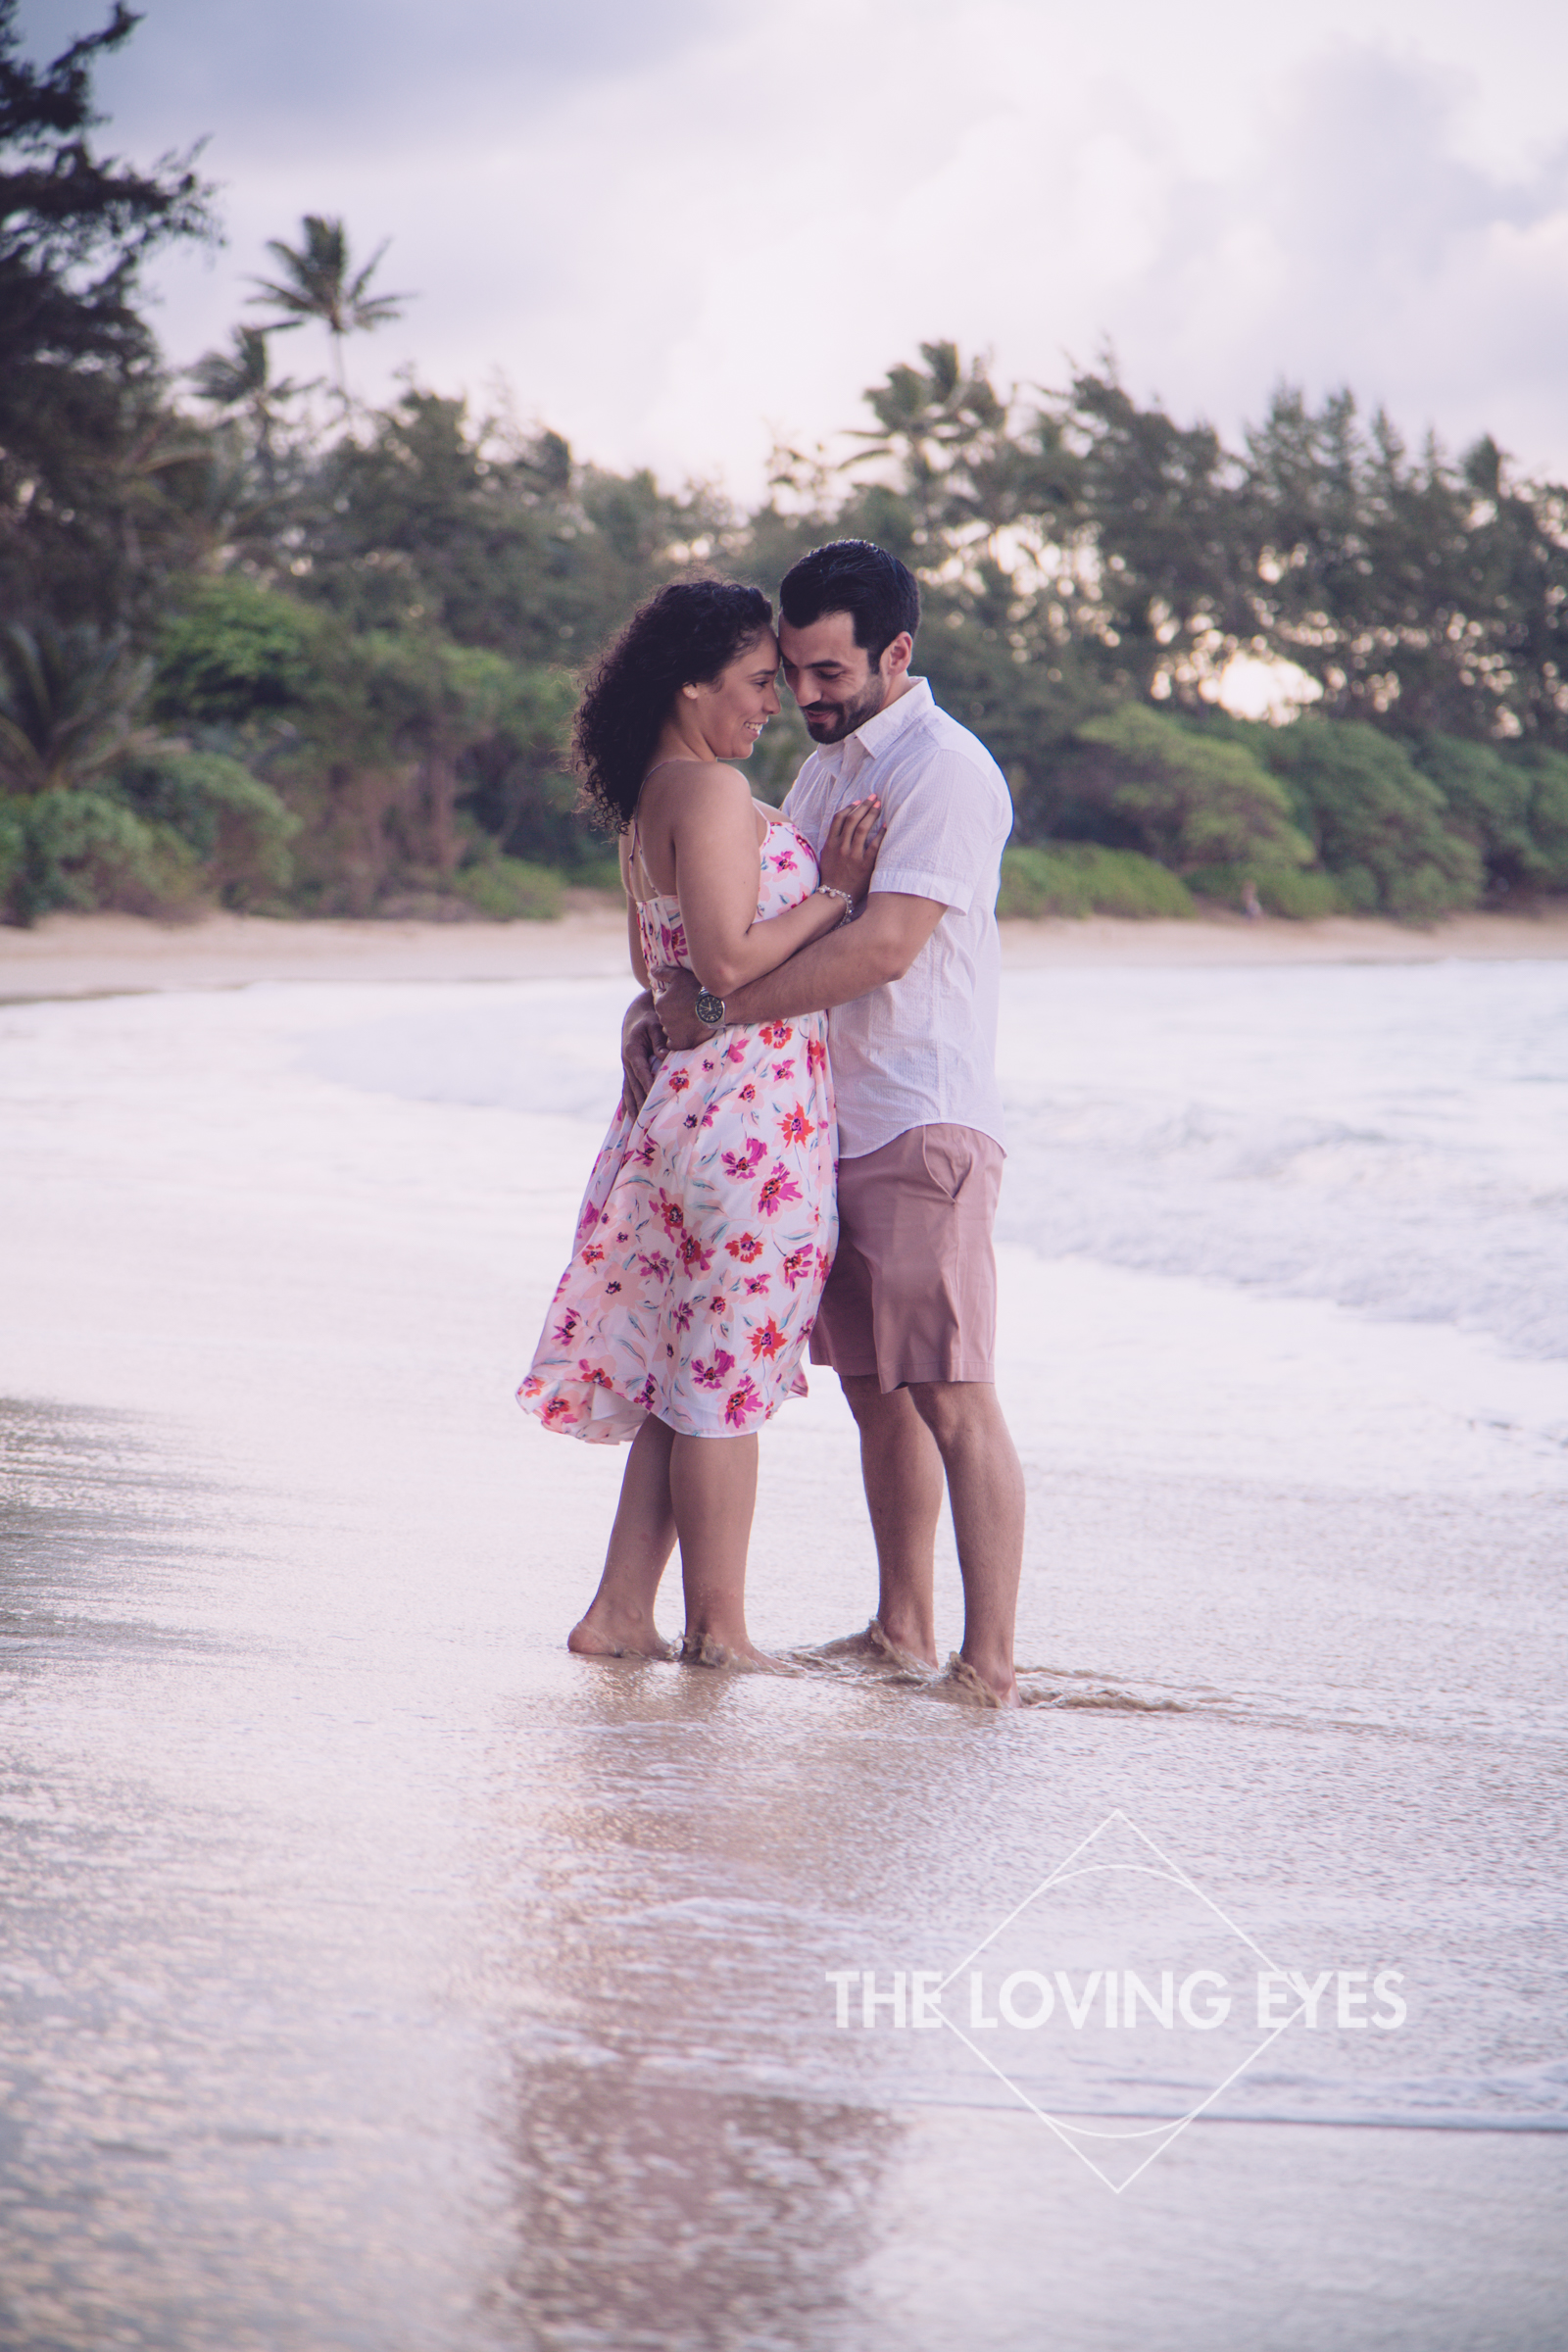 Hawaii-beach-proposal-4.jpg